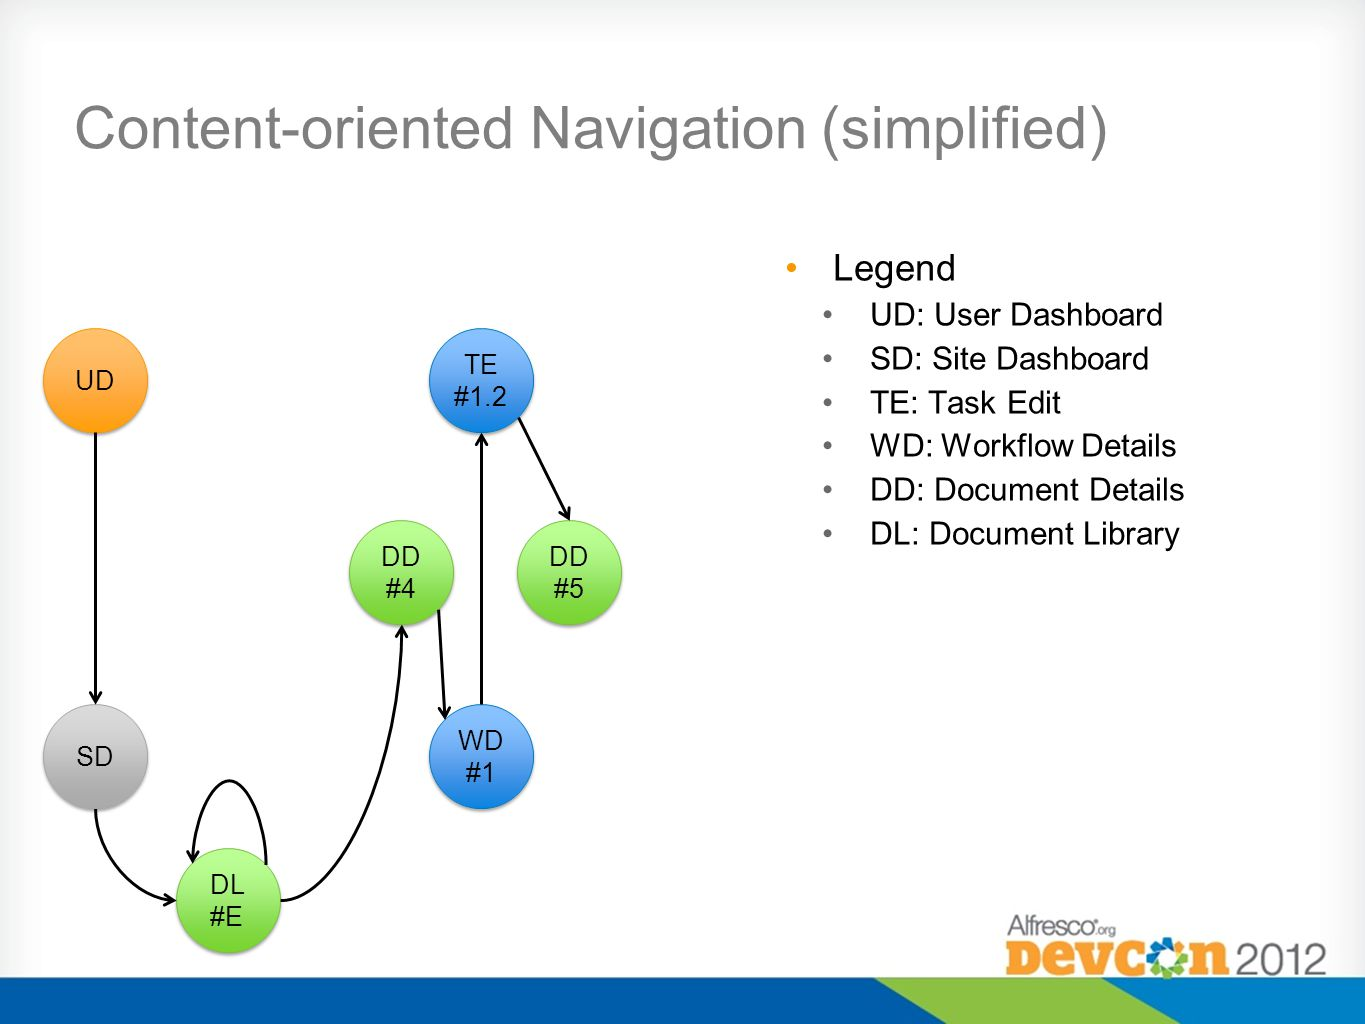 Content-oriented Navigation (simplified) Legend UD: User Dashboard SD: Site Dashboard TE: Task Edit WD: Workflow Details DD: Document Details DL: Document Library UD TE #1.2 DD #4 DD #5 DL #E WD #1 SD